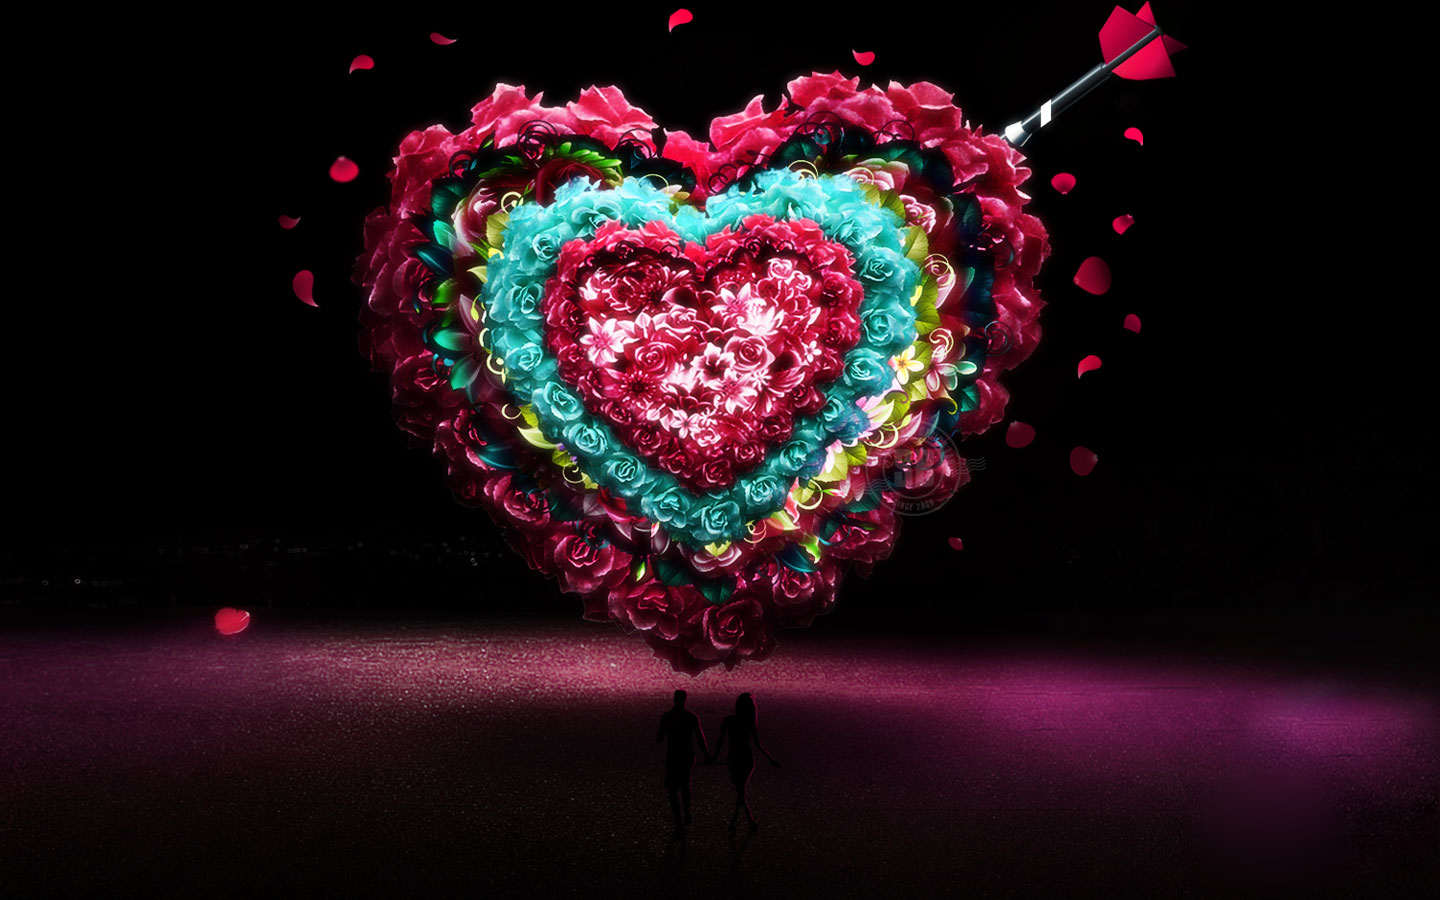 lovely-heart-best-valentines-wallpaper-free - hd wallpaper